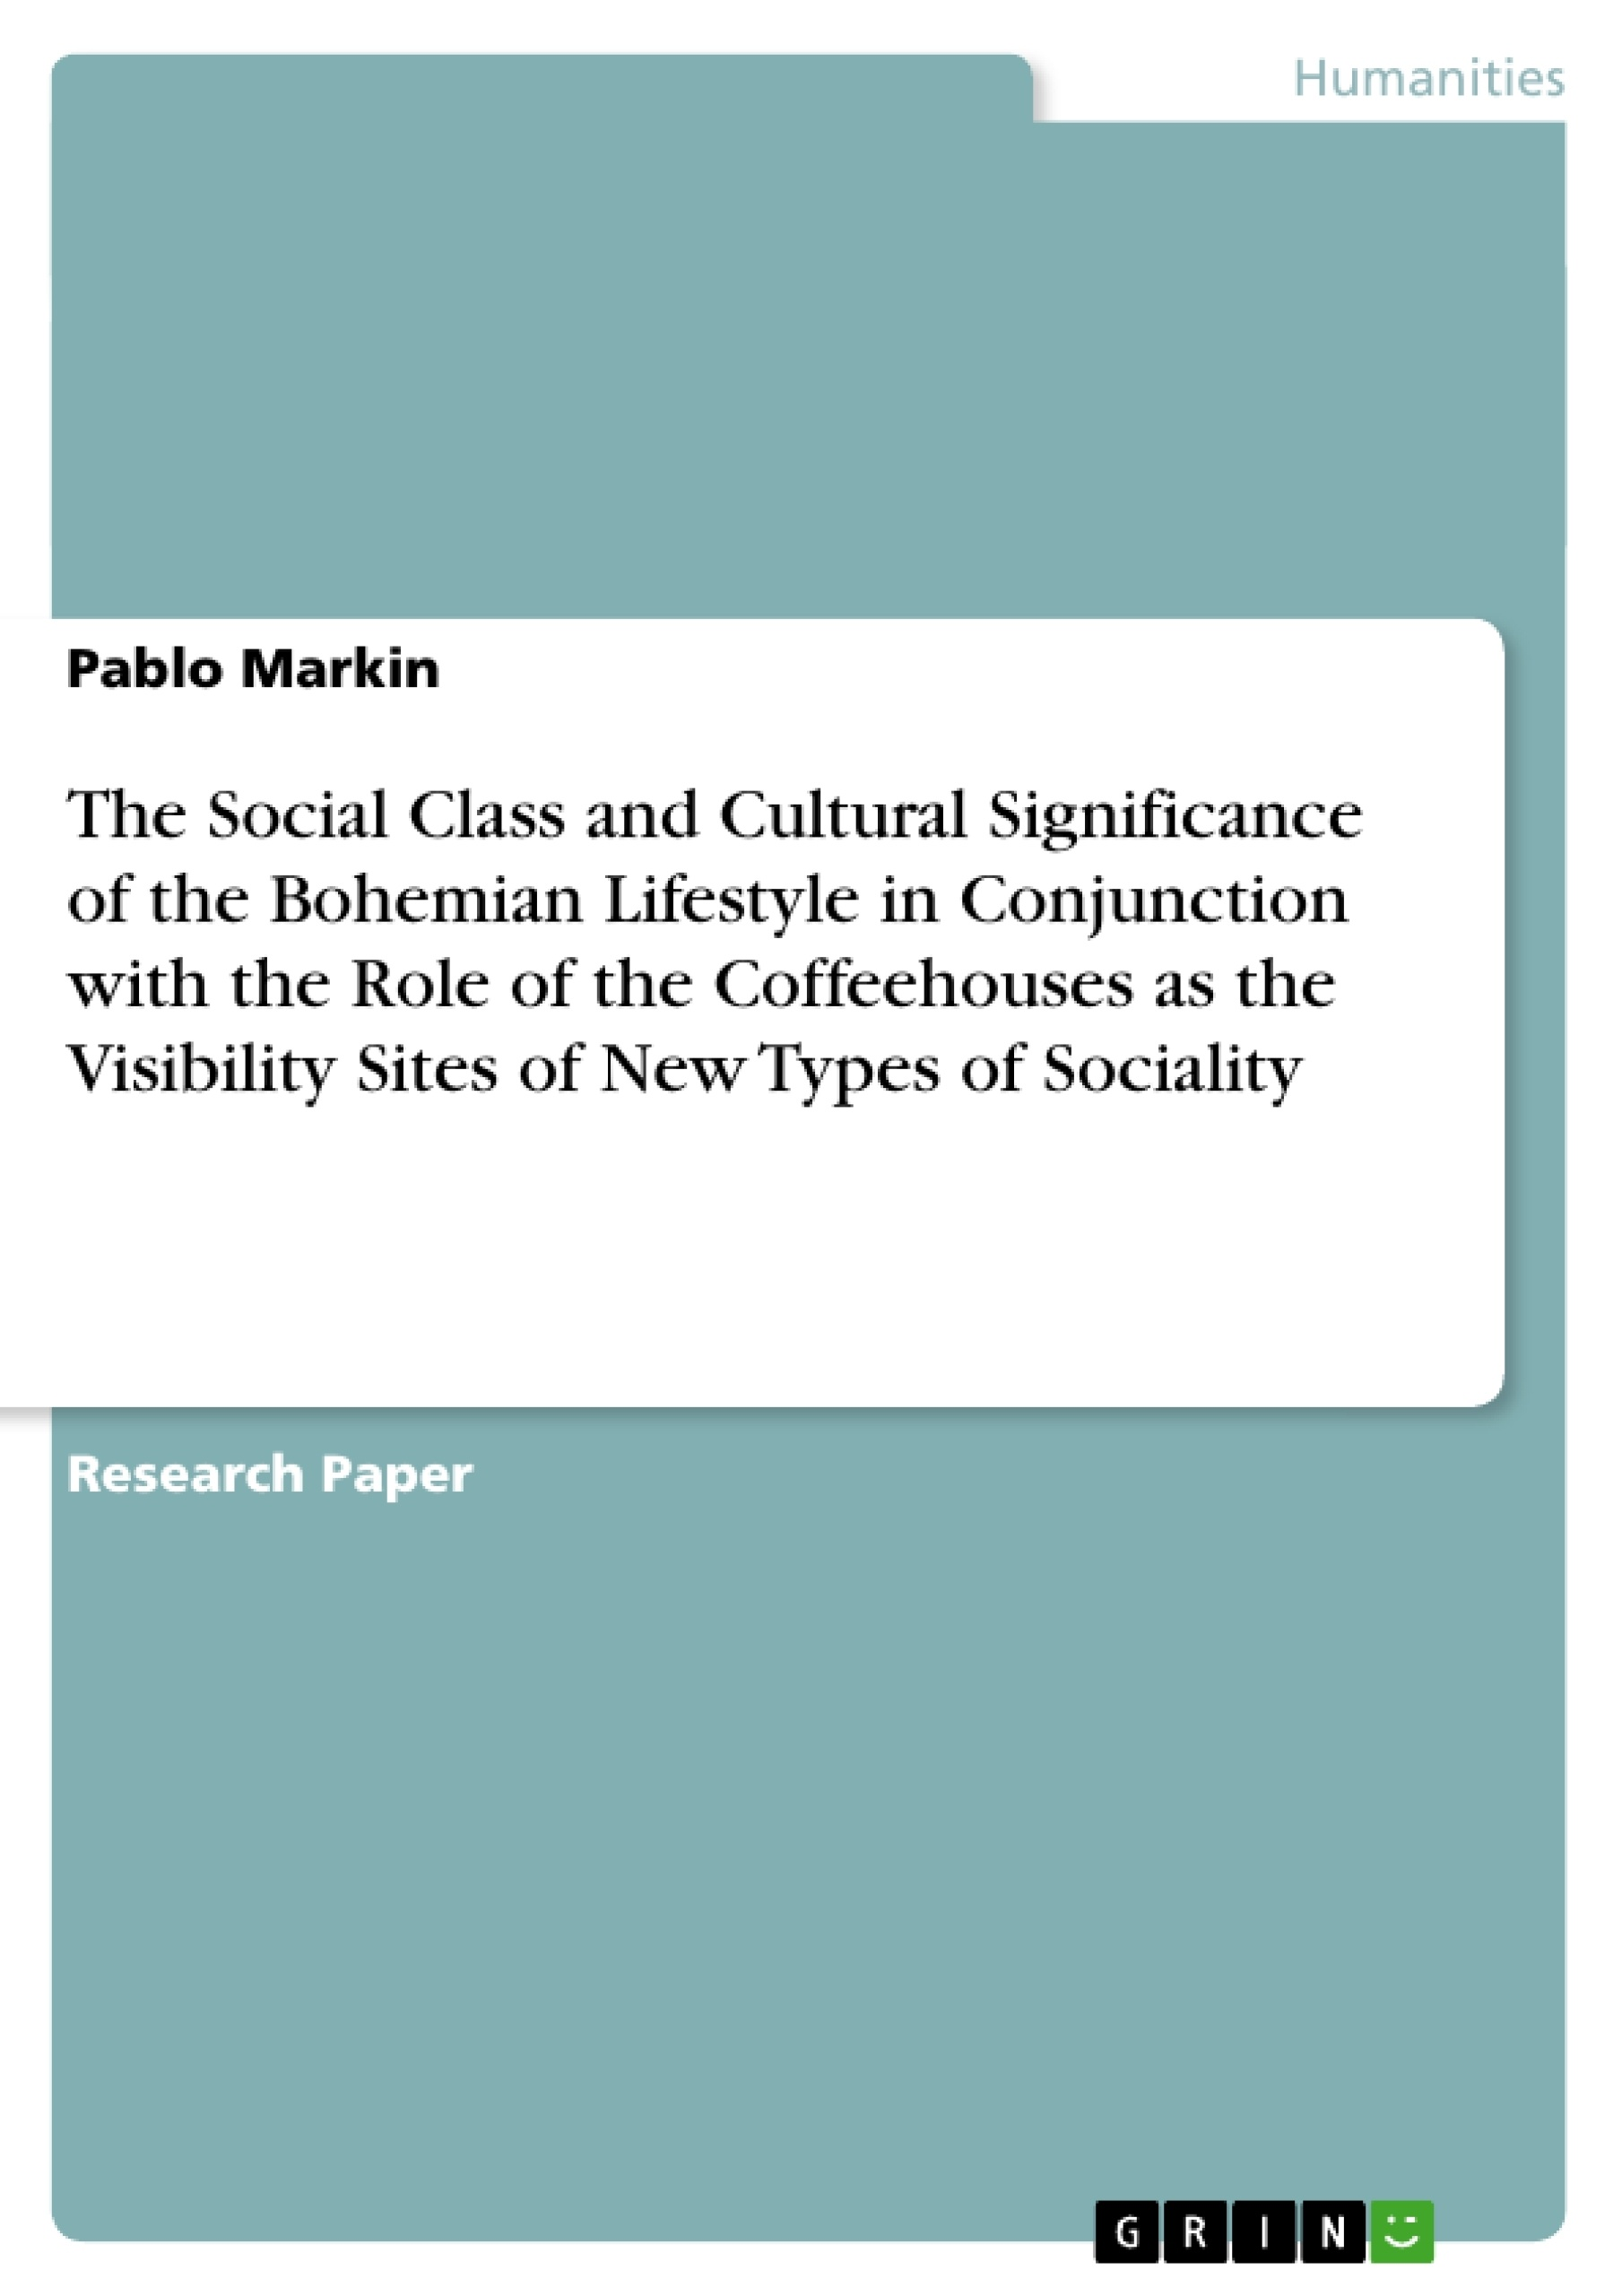 Title: The Social Class and Cultural Significance of the Bohemian Lifestyle in Conjunction with the Role of the Coffeehouses as the Visibility Sites of New Types of Sociality